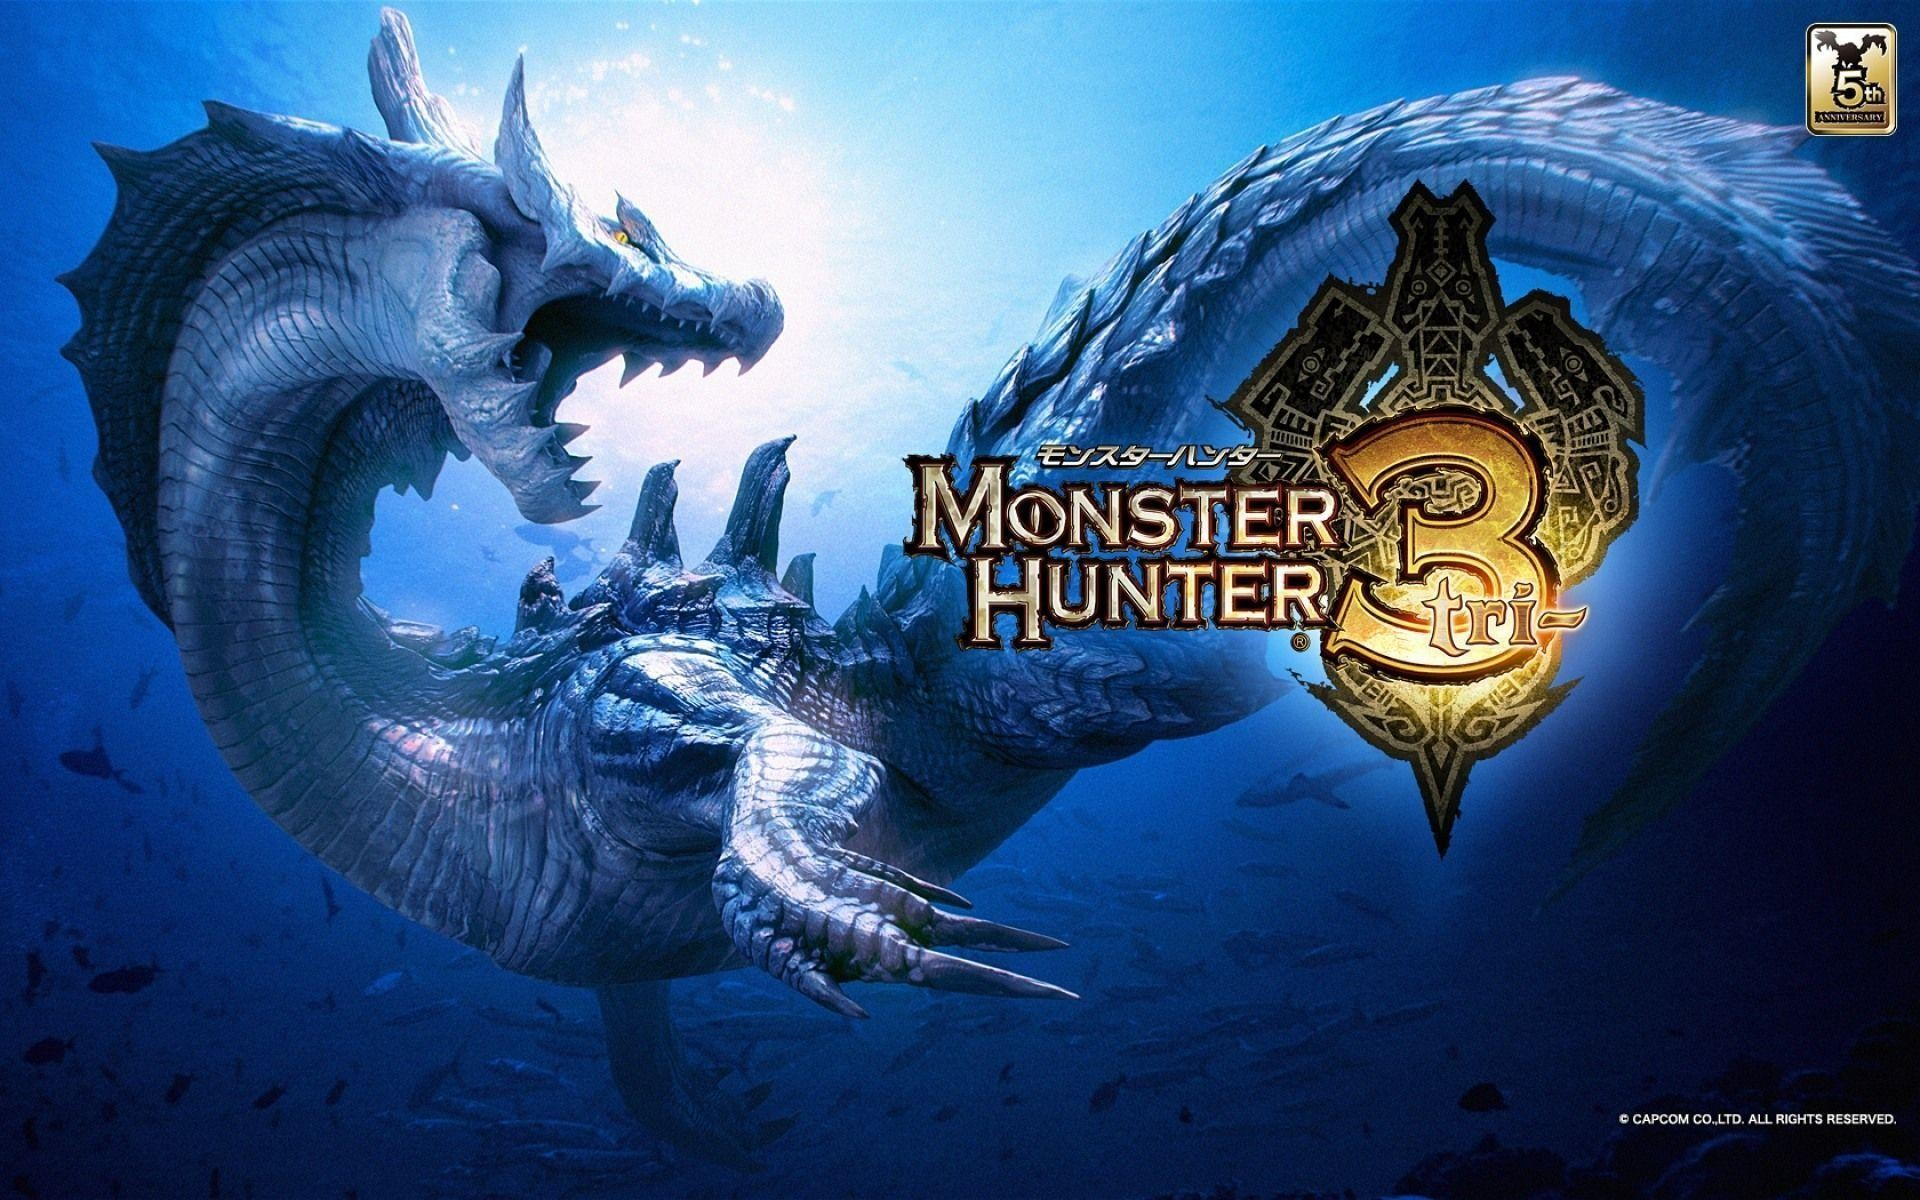 Monster Hunter Tri Wallpaper 67 images 1920x1200